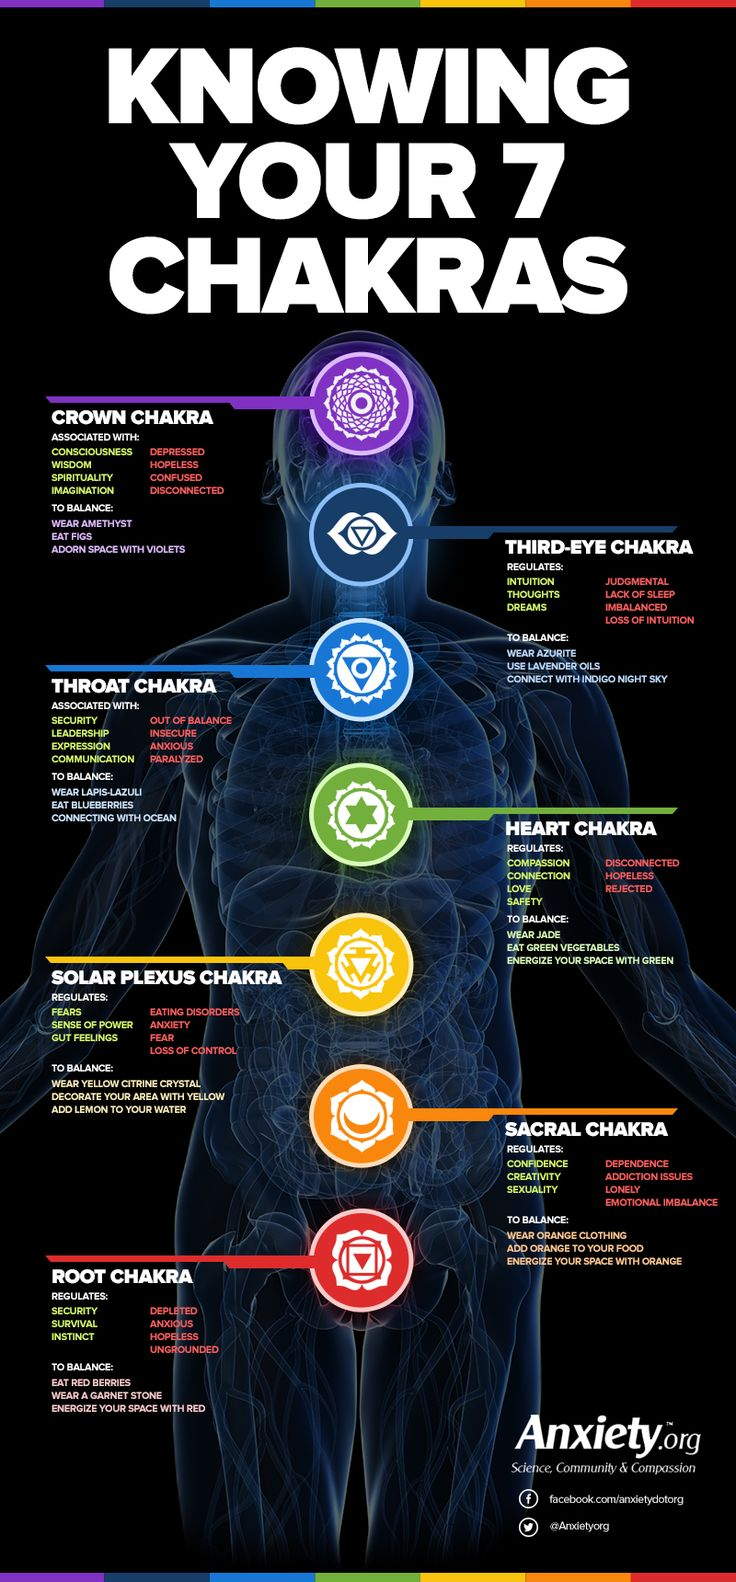 Knowing the 7 Chakras #health #HealthyChoice